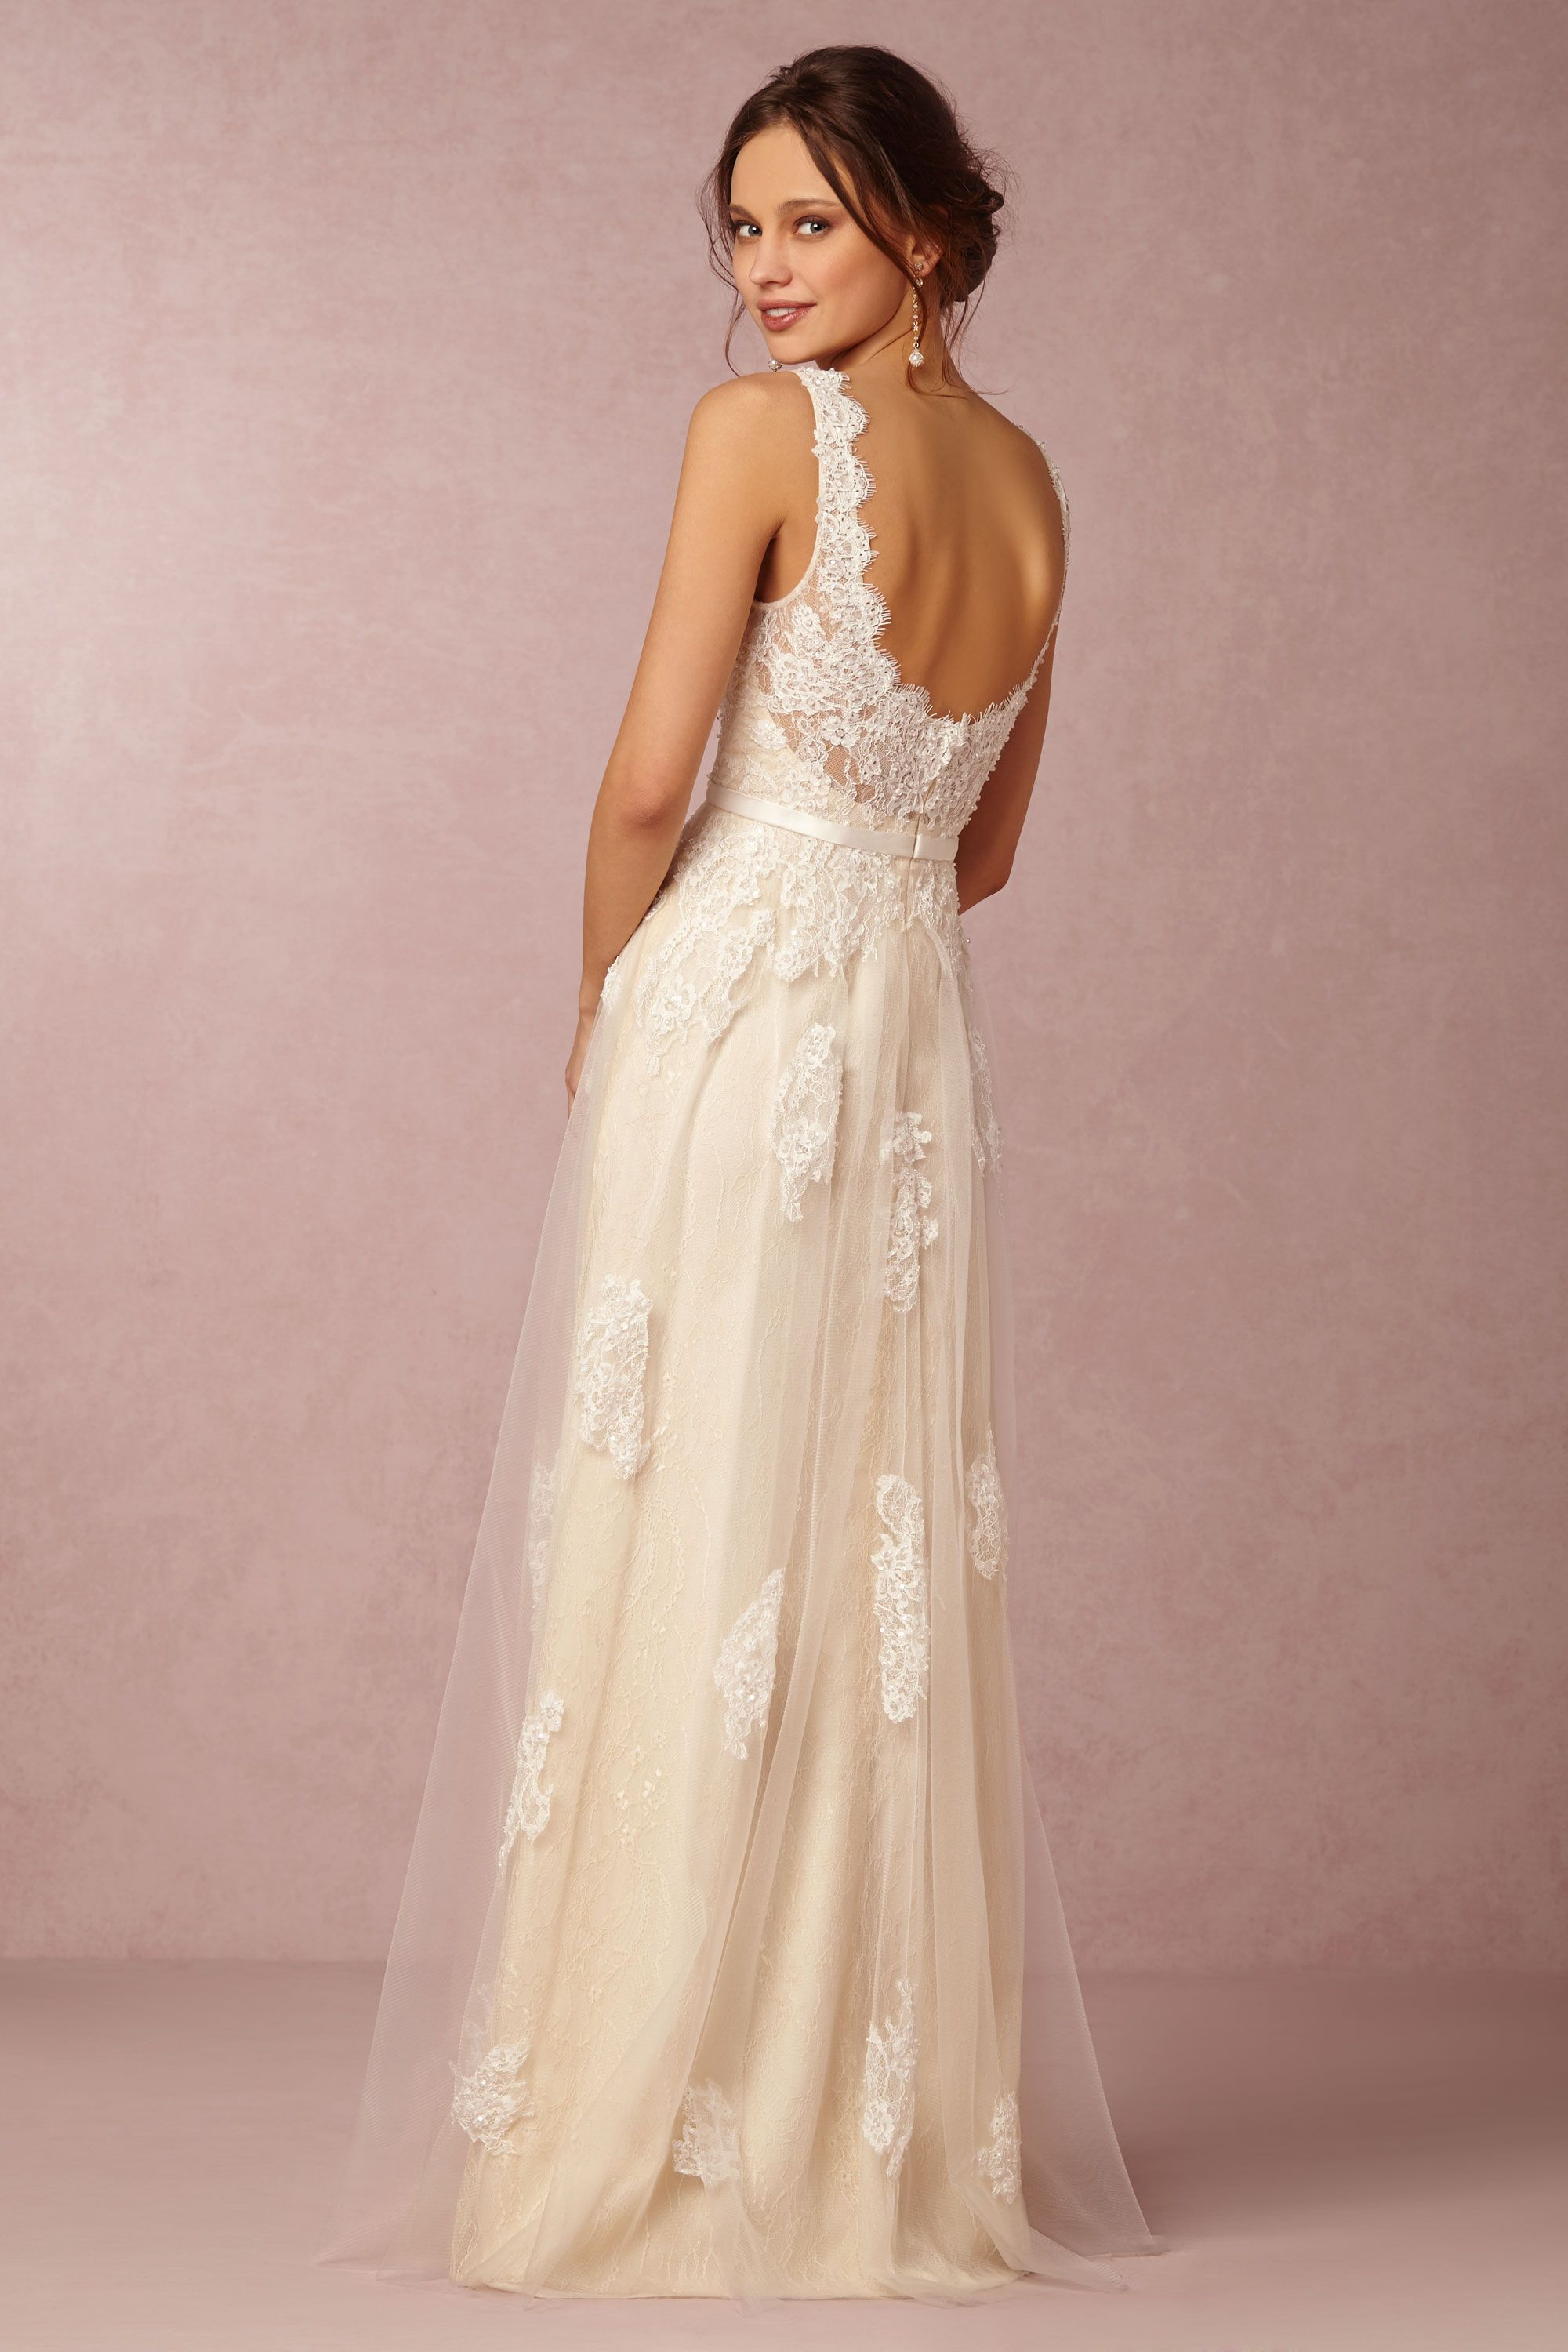 Georgia Gown from @BHLDN | Bride | Pinterest